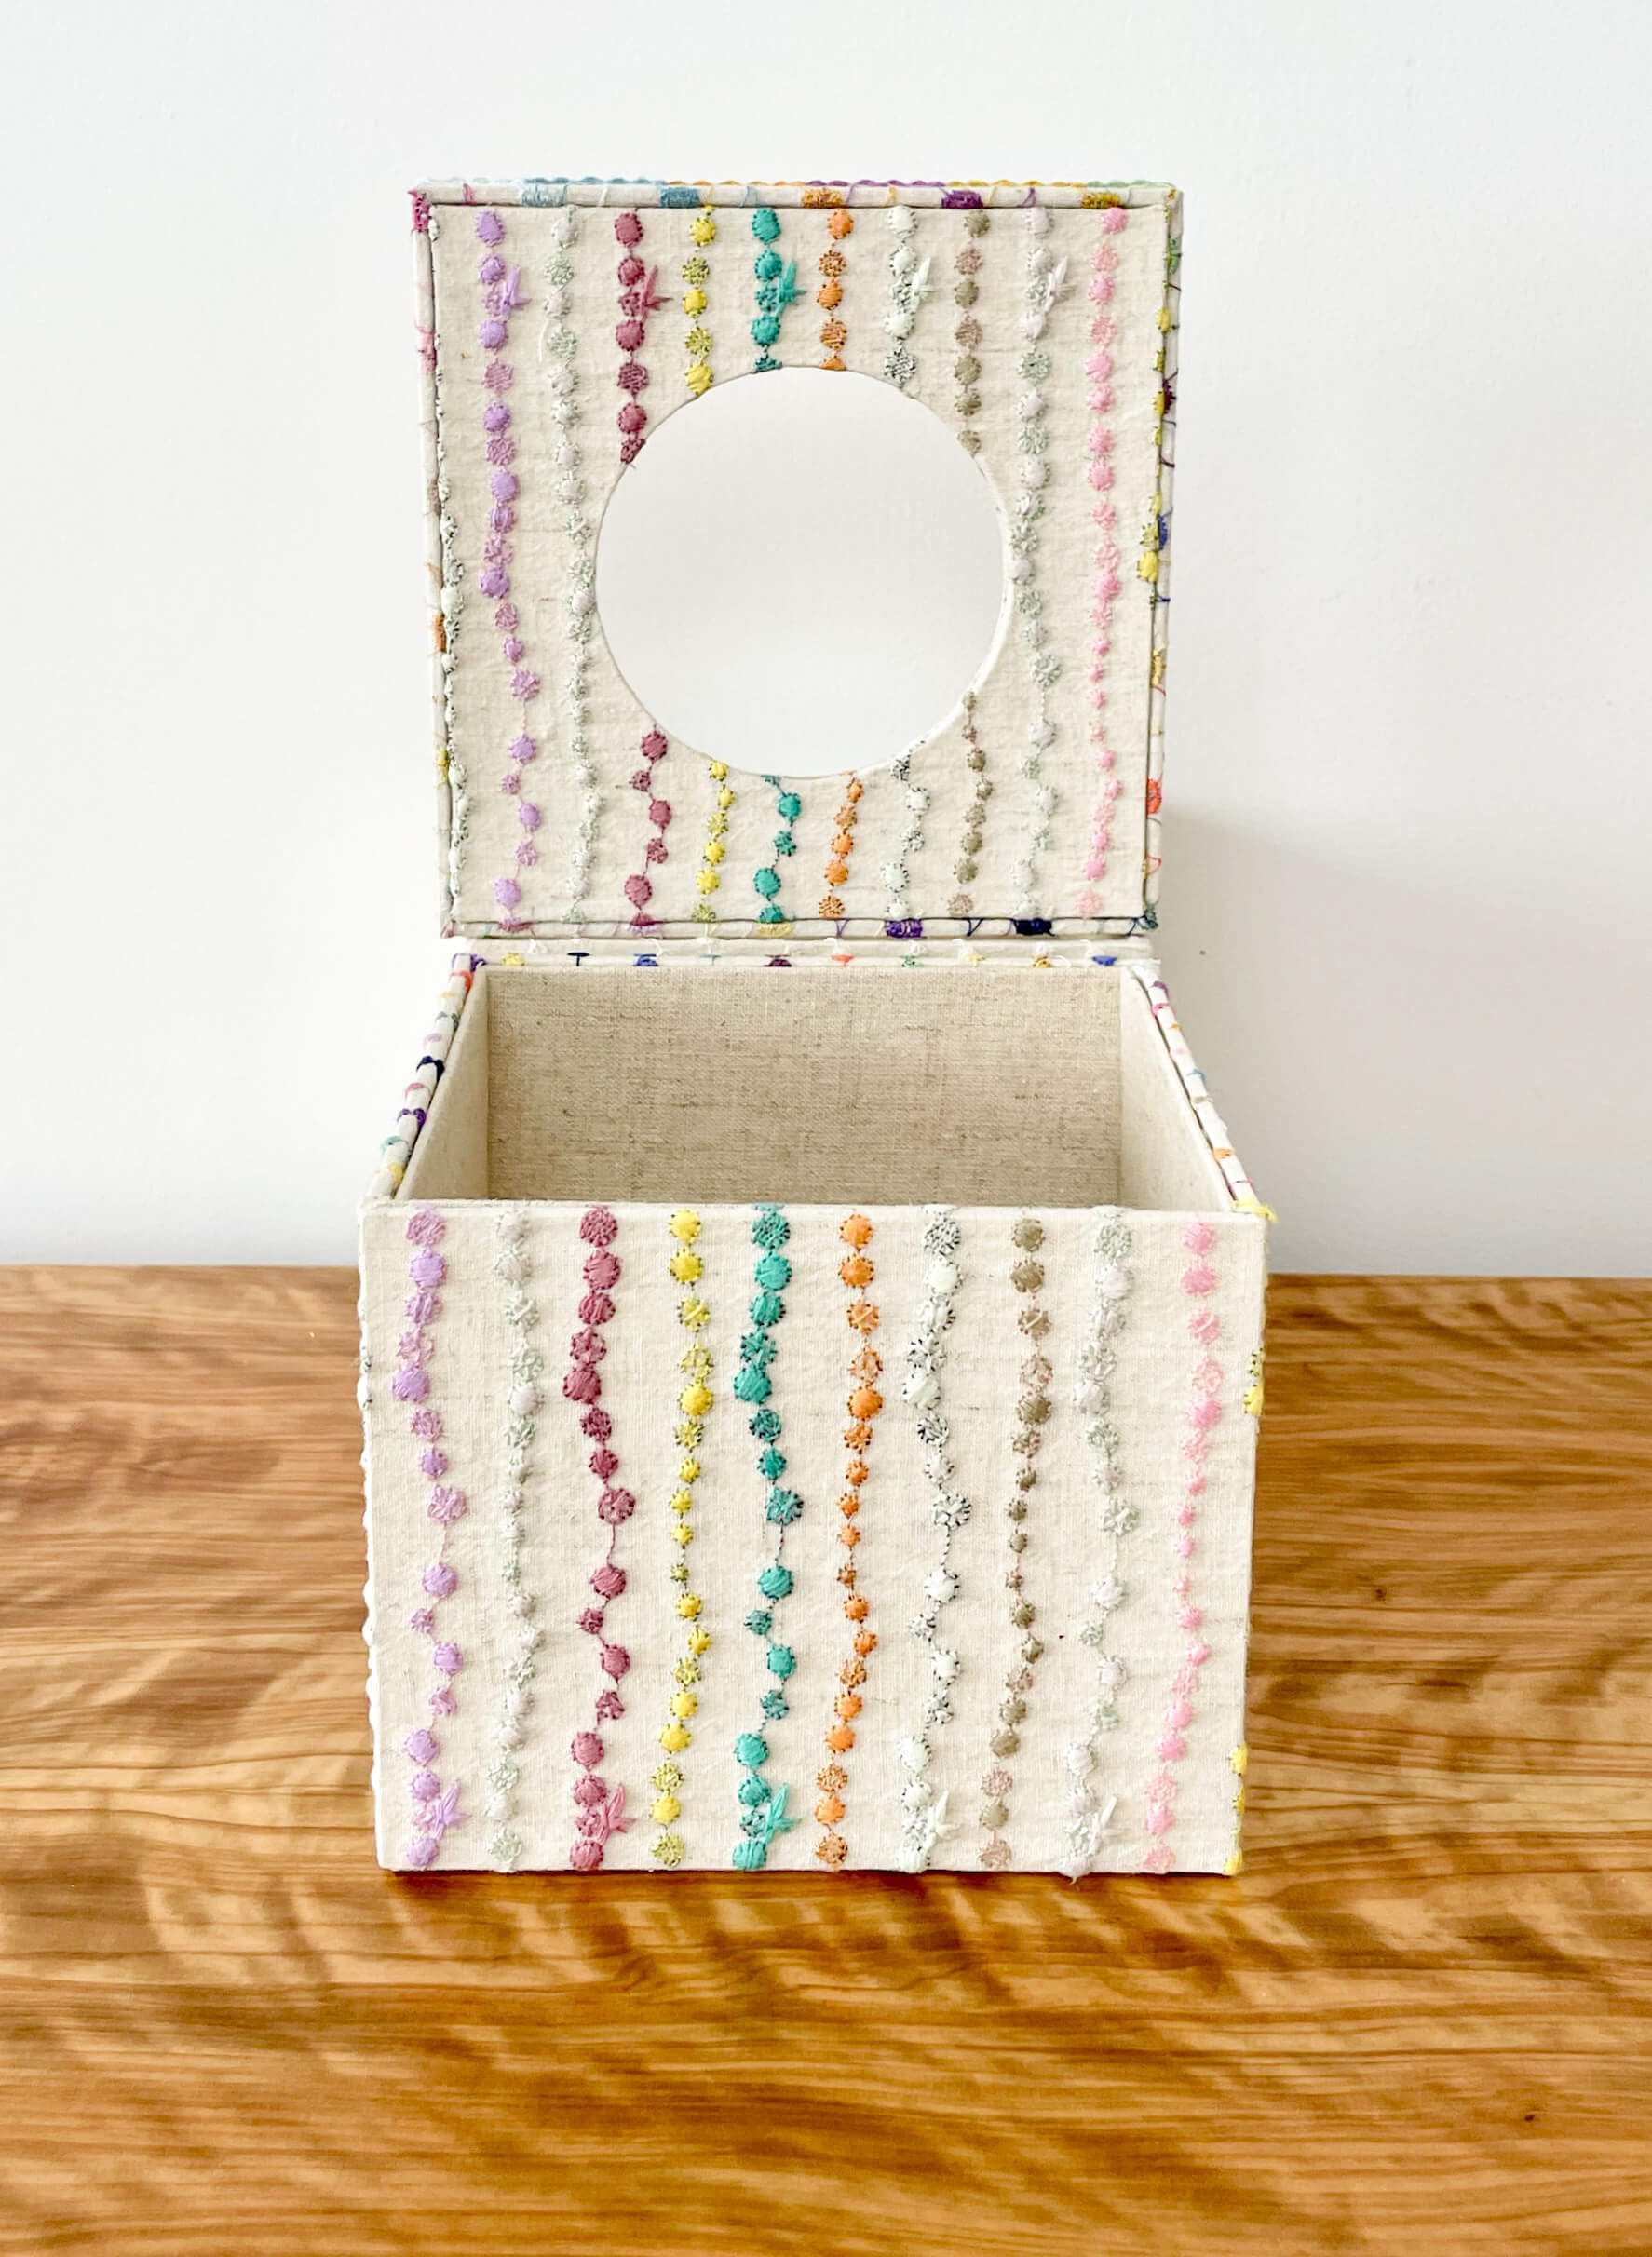 hacocco cartonnage tissue box square rainbow The Moon Jar tissue case embroidered fabric